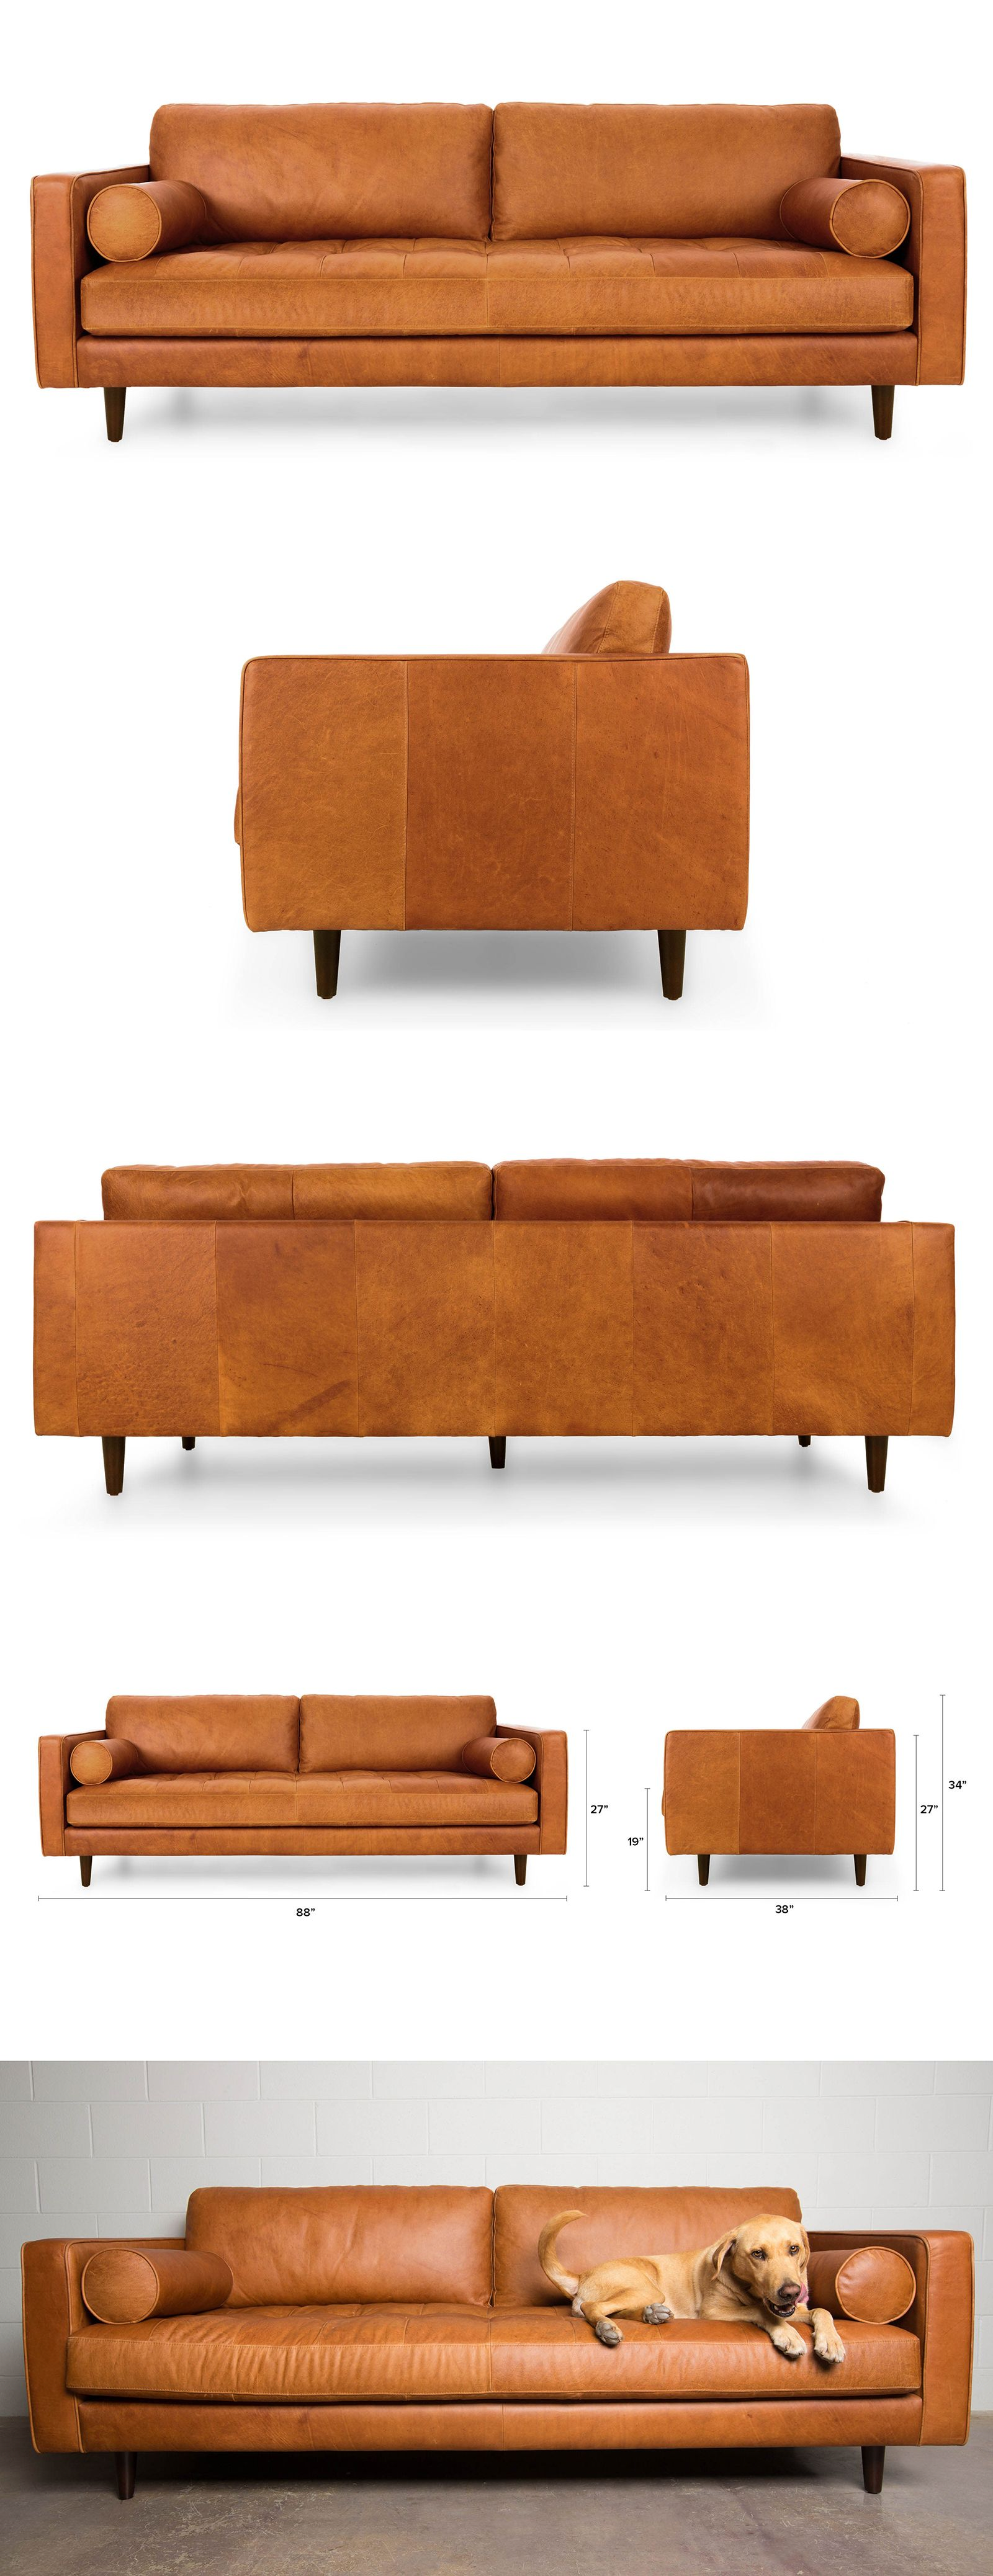 Decorate your home with quality furniture at everyday low prices